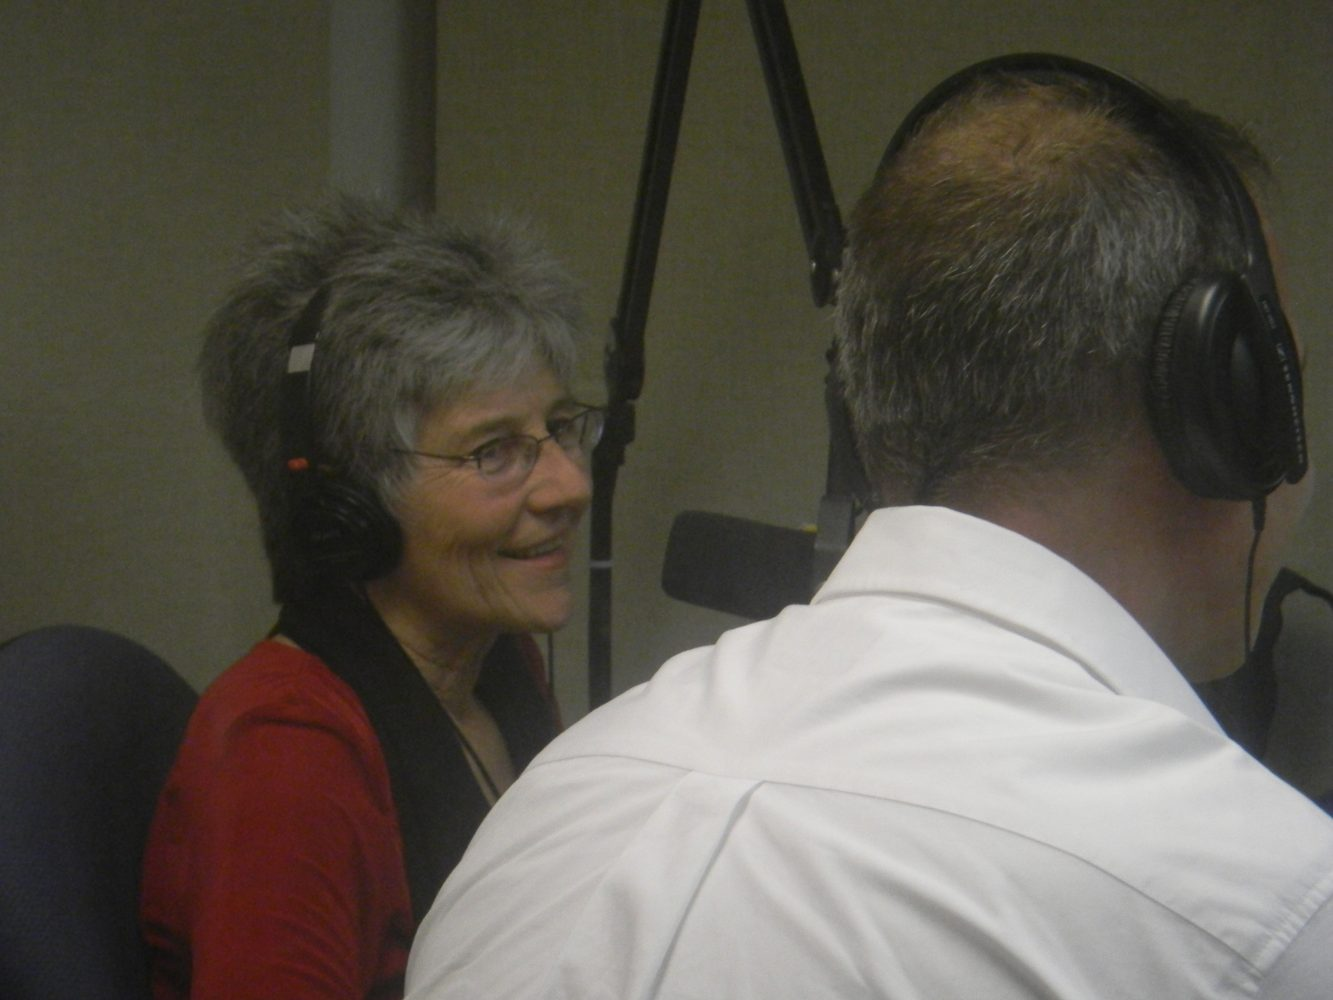 Executive Director of the new River Phoenix Center for Peacebuilding, Dot Maver (photo by Donna Green-Townsend)